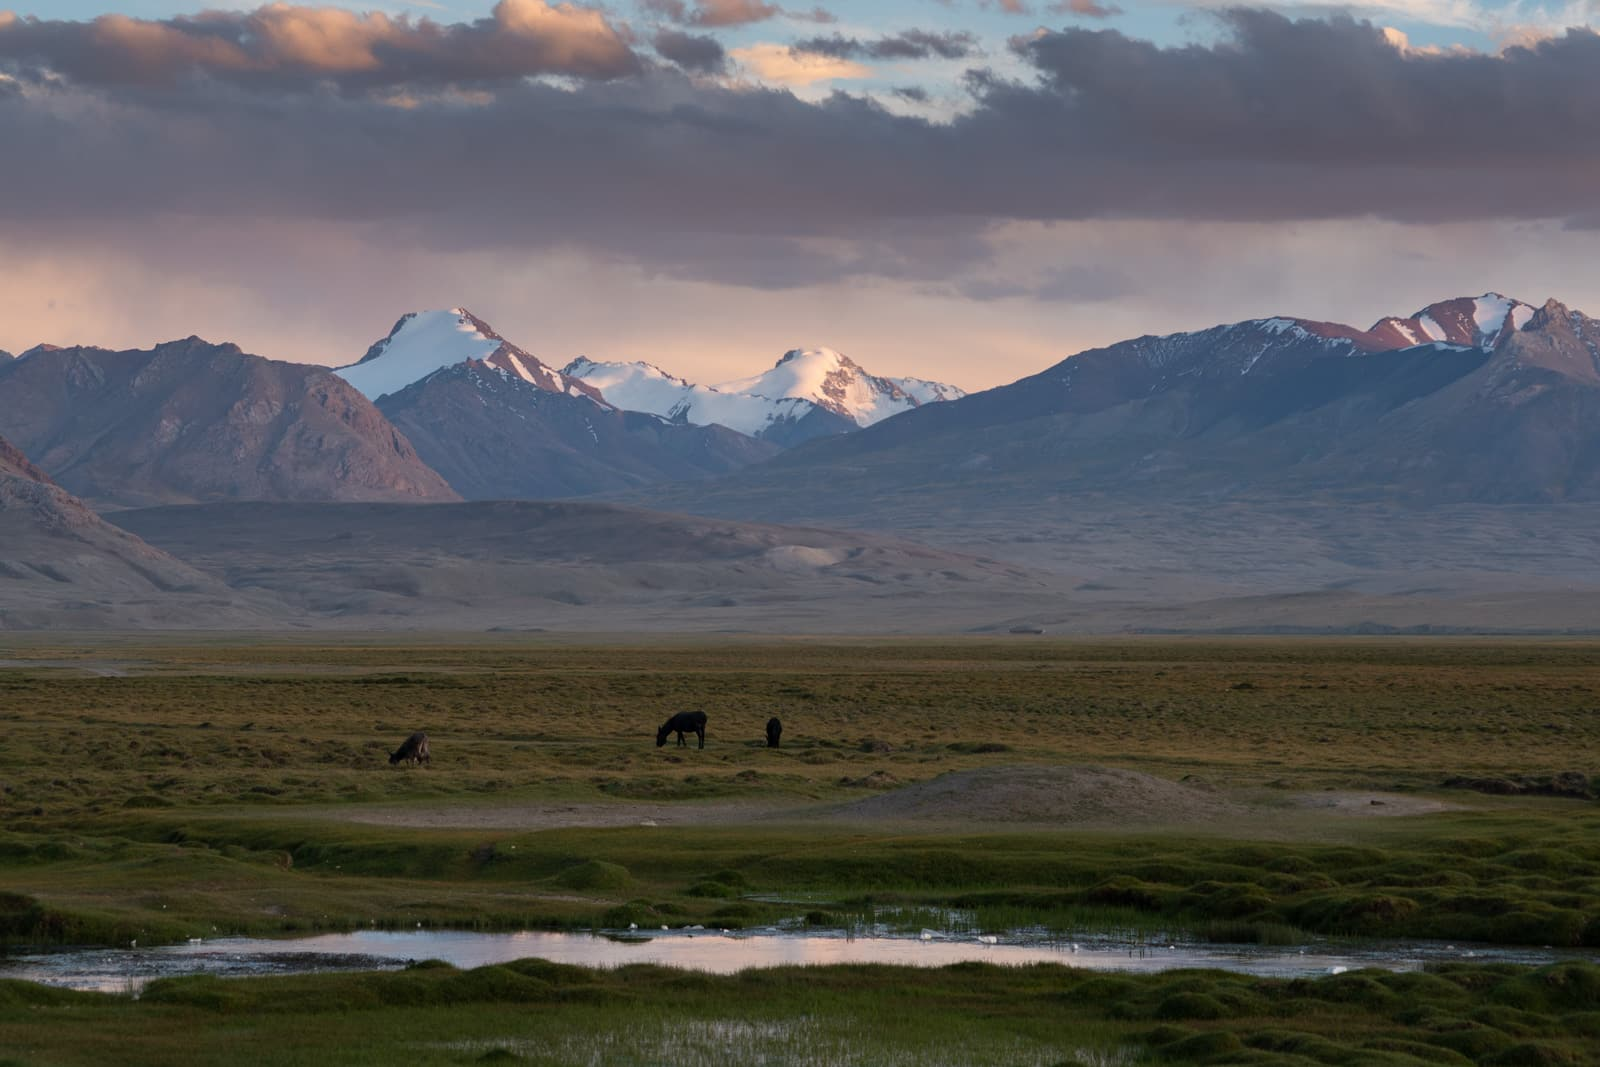 Horses grazing during sunset over Shaimak